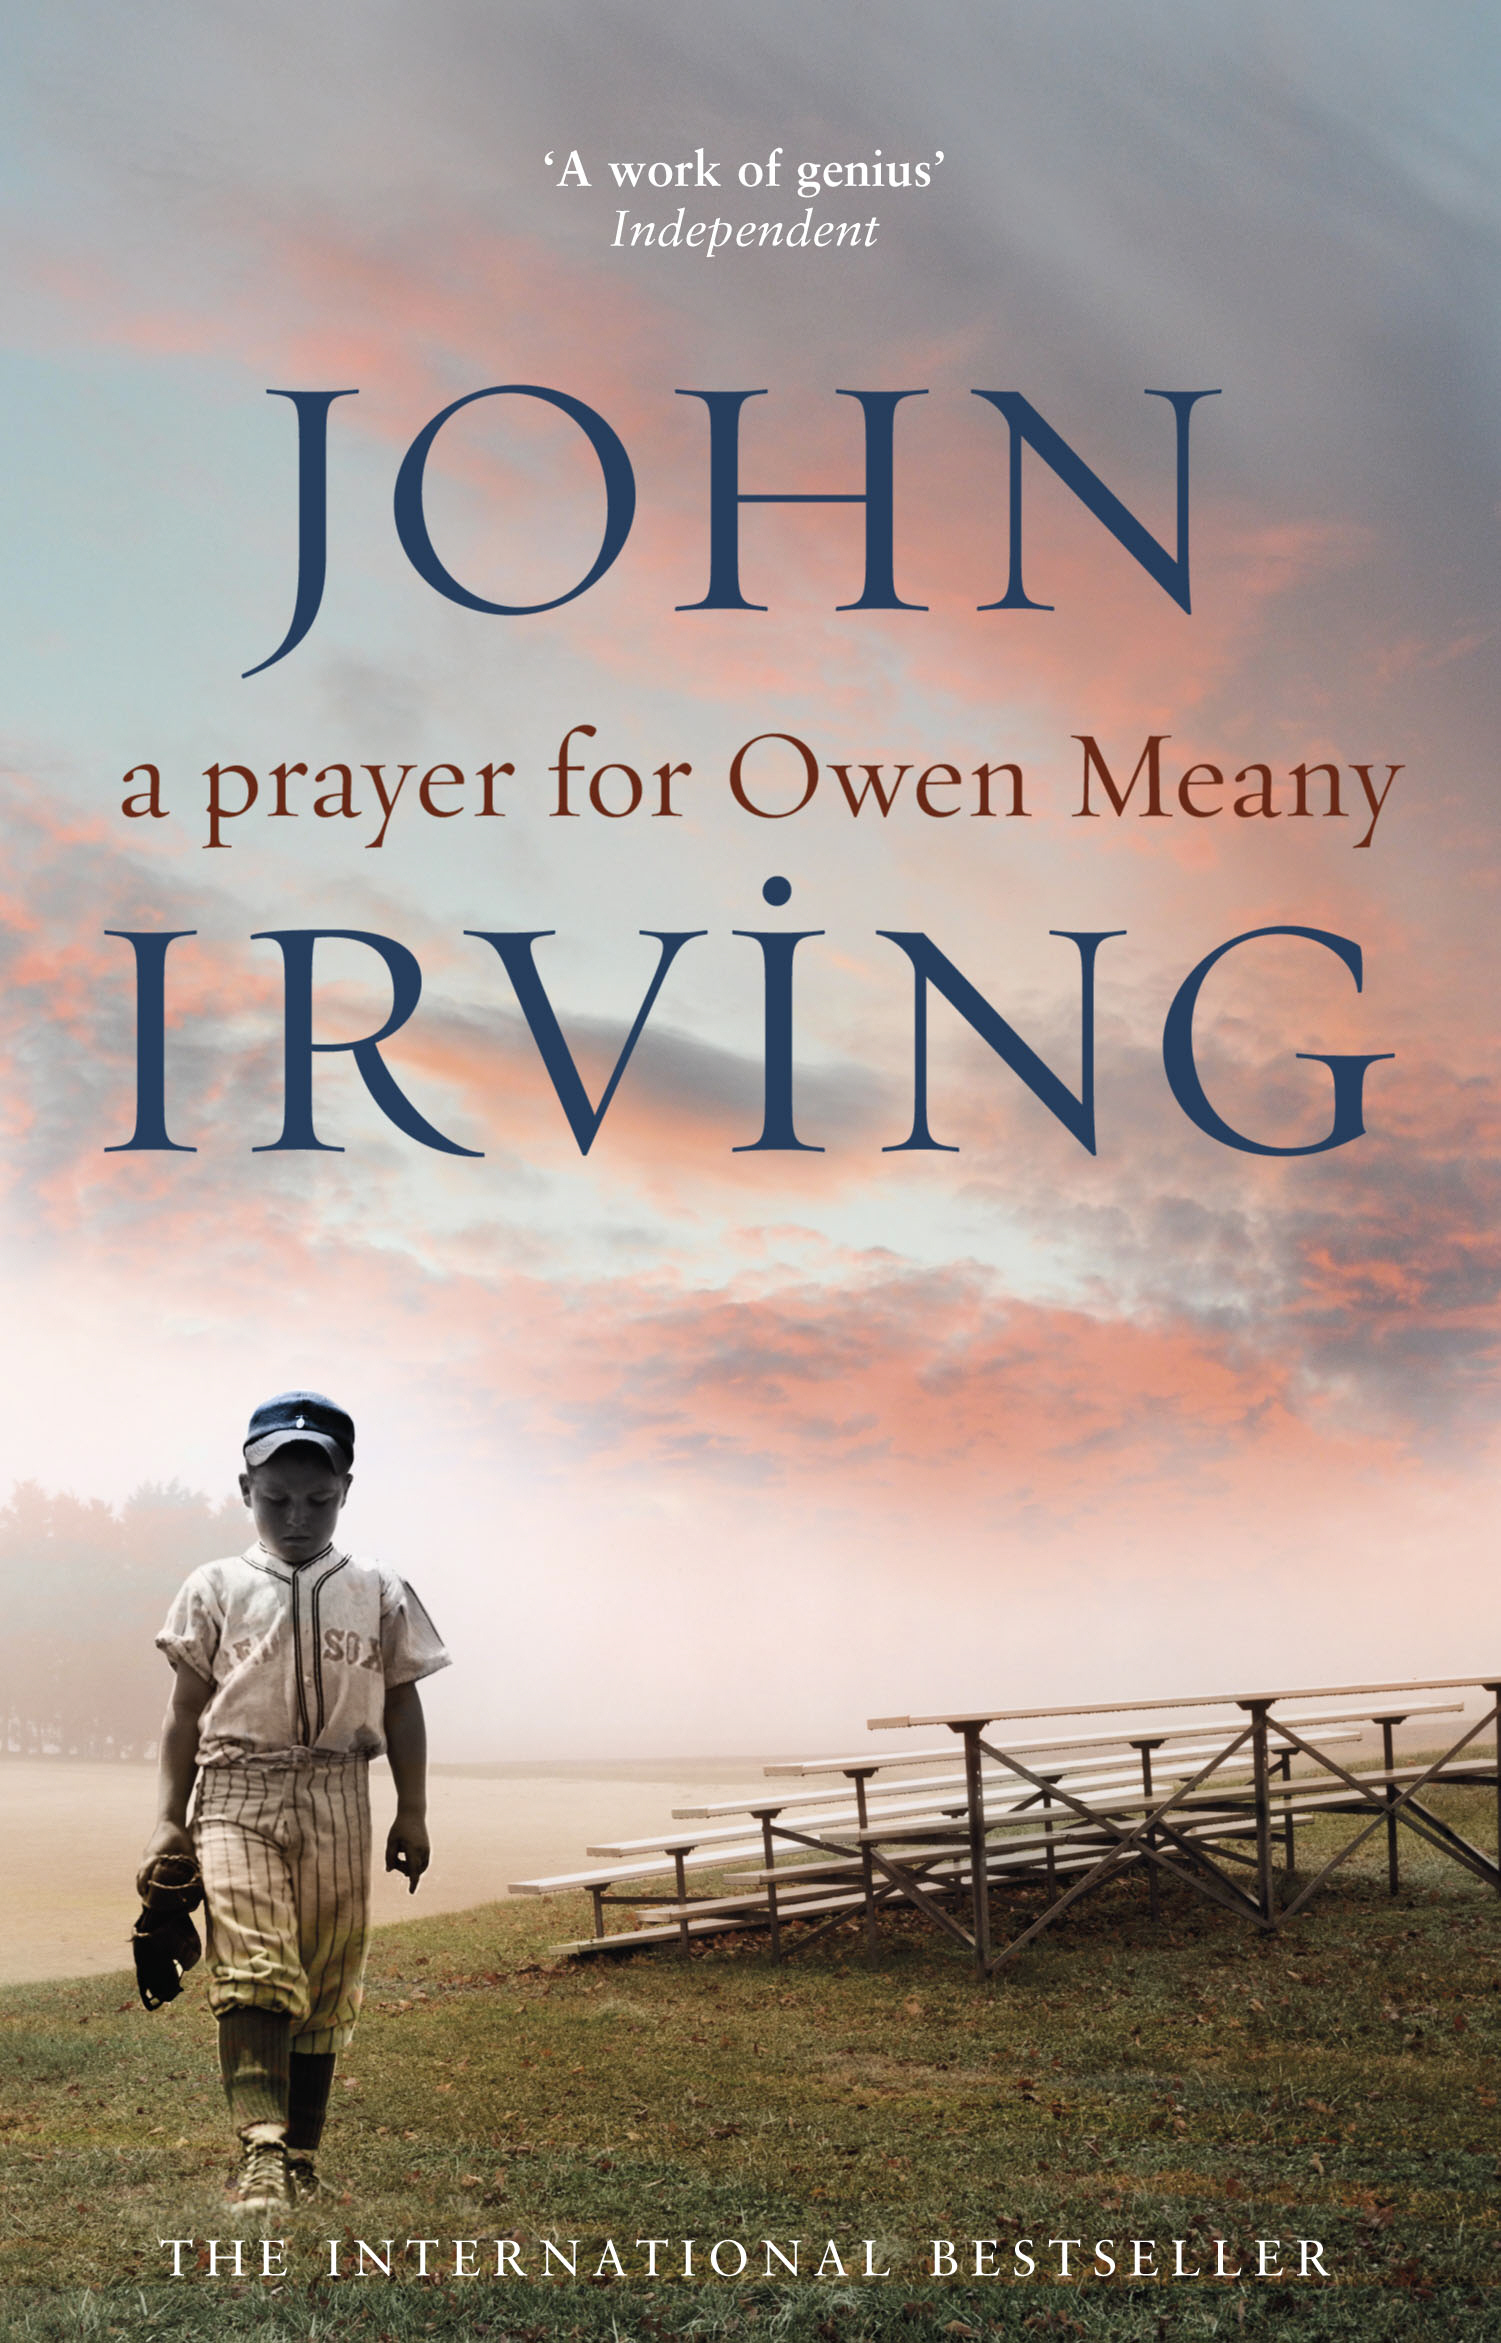 themes in a prayer for owen meany Our reading guide for a prayer for owen meany by john irving includes a book club discussion guide, book review, plot summary-synopsis and author bio.